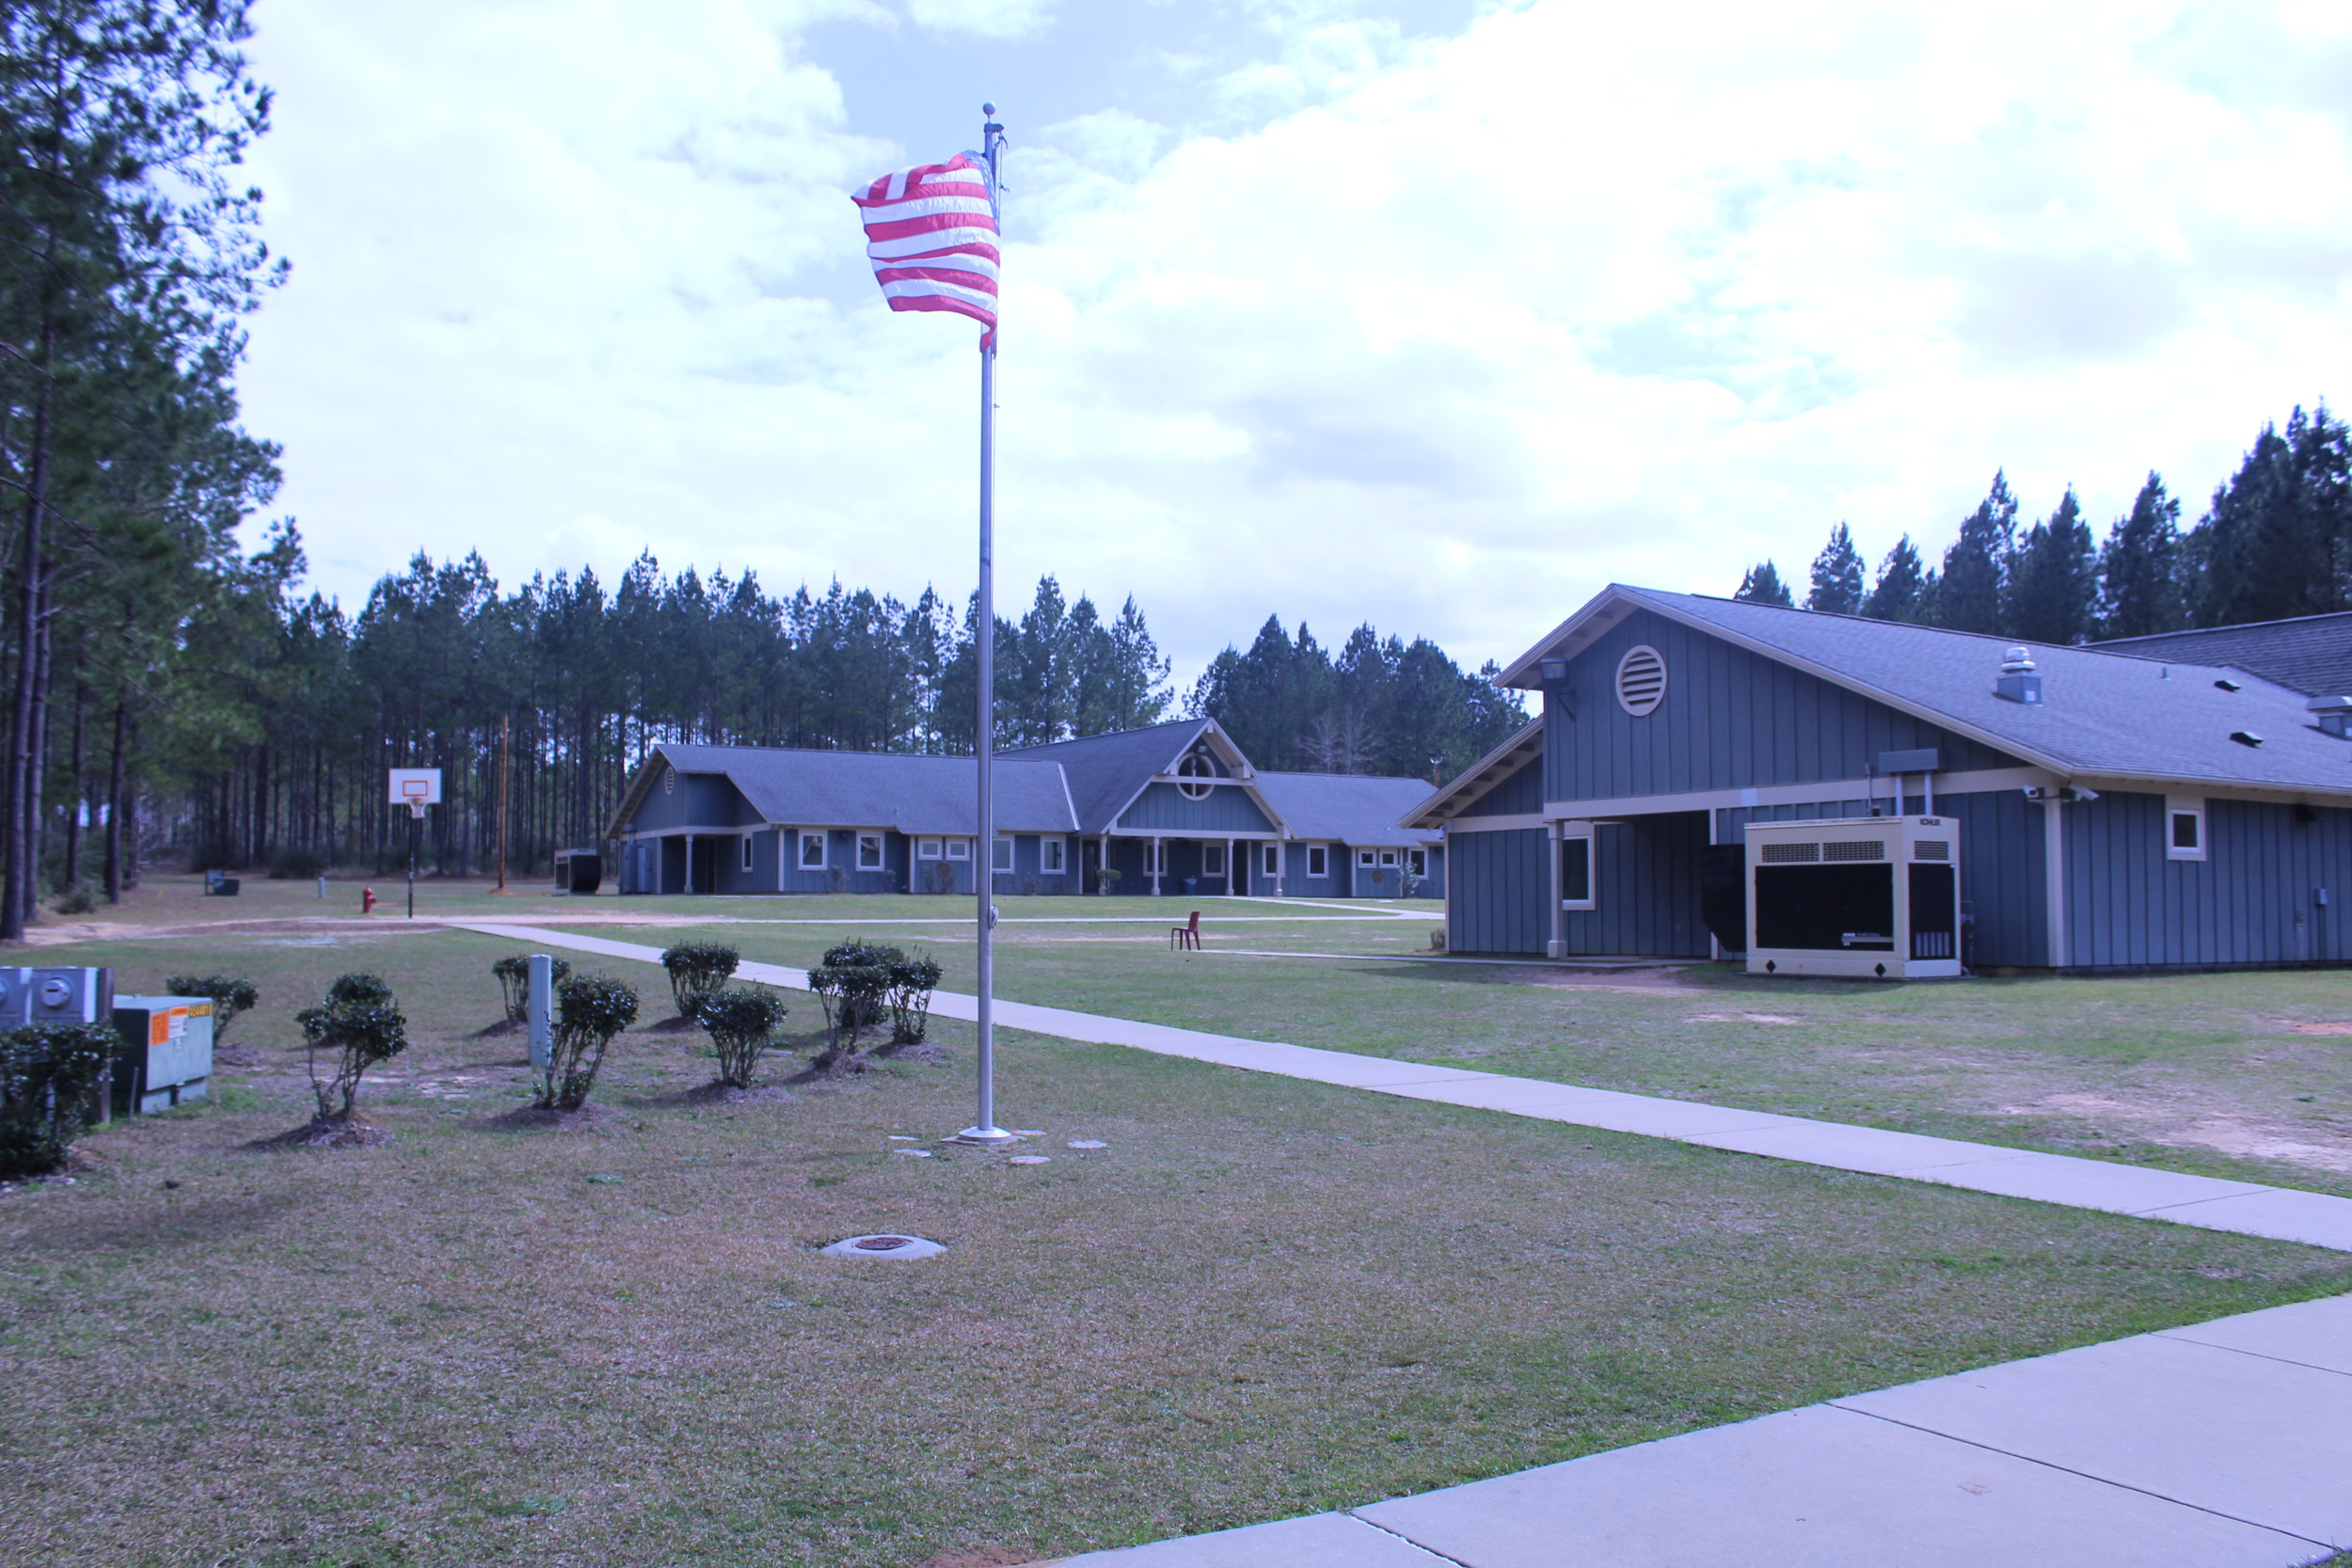 The Baldwin County Wilderness Facility will soon be privately owned after the Baldwin County Commission voted to sell the property to Pathway Inc., the company who has been leasing the facility from the county for over a year.